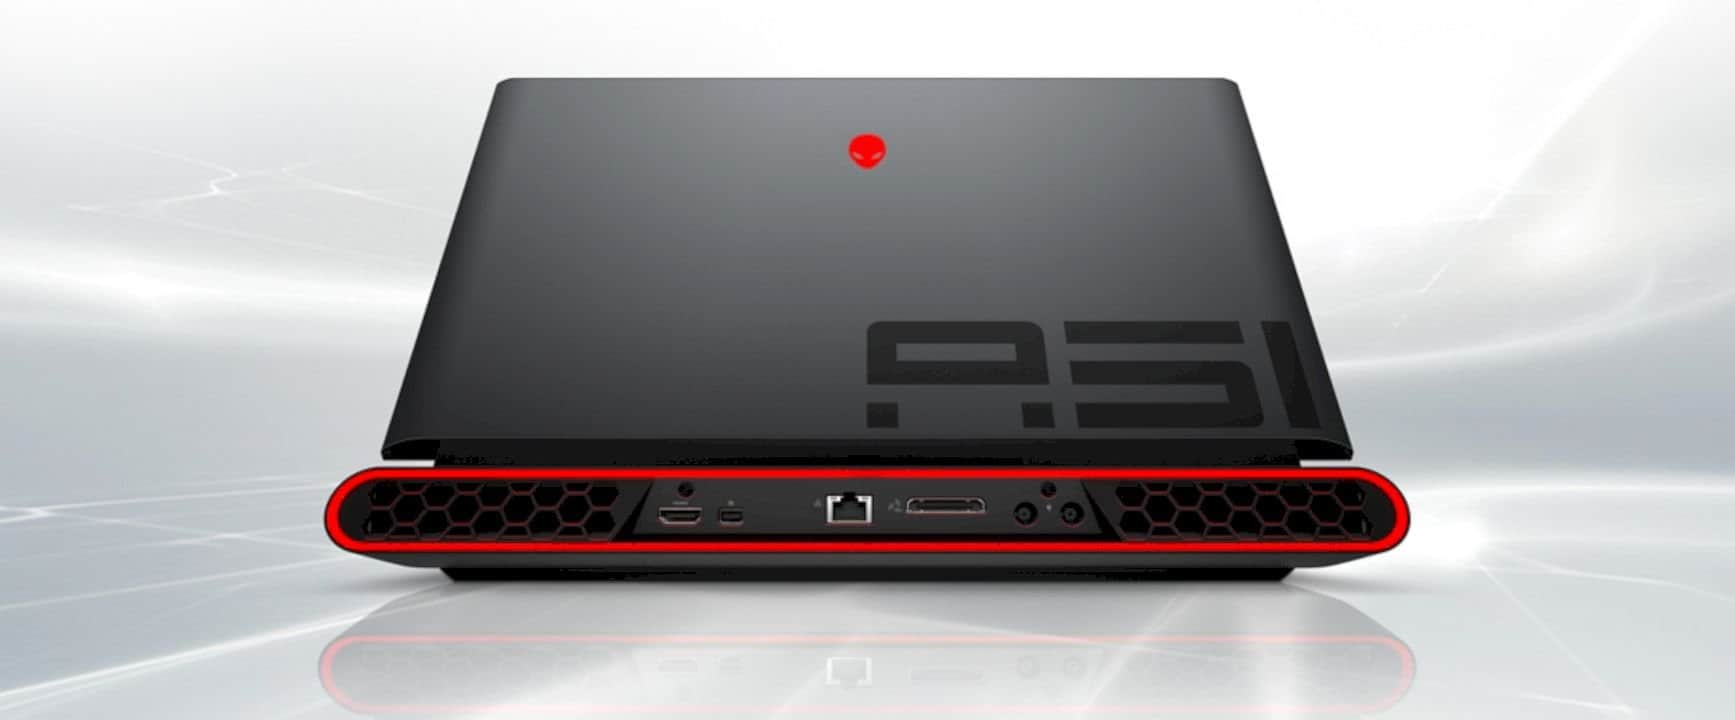 New Alienware Area 51m Gaming Laptop 6